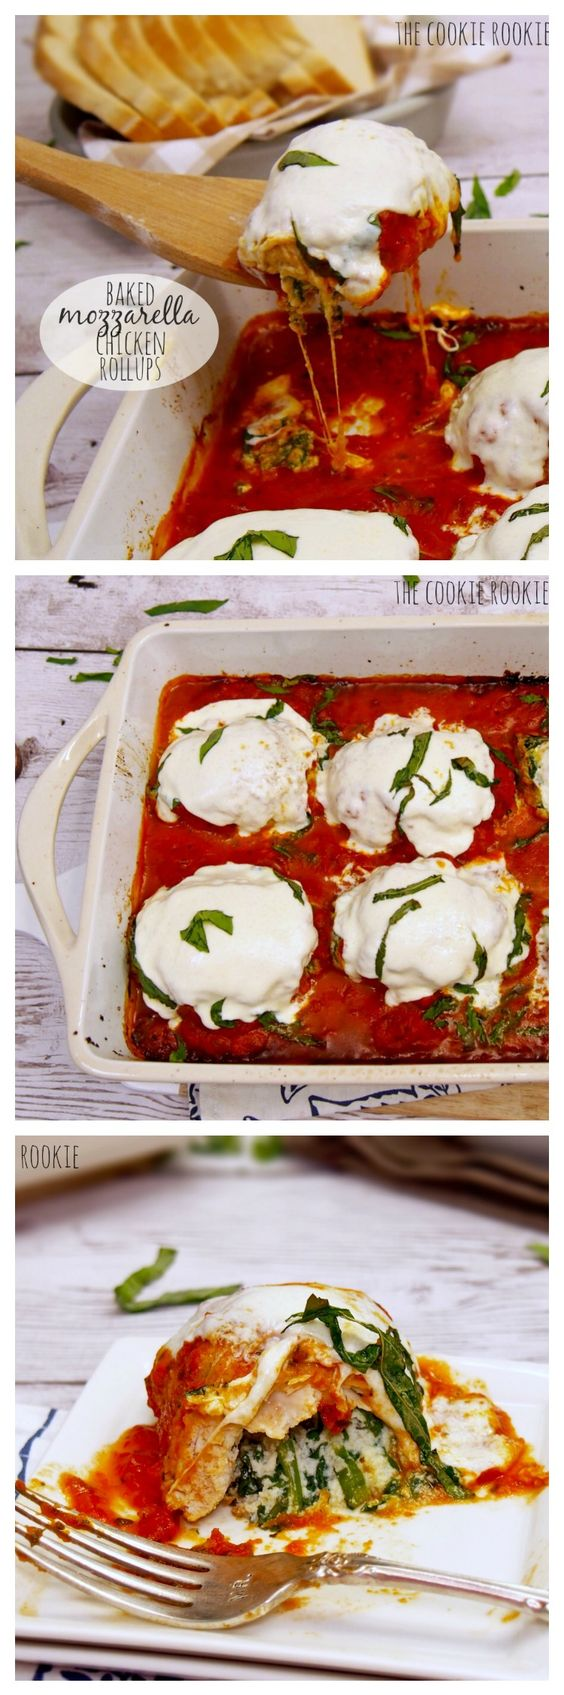 Baked Mozzarella Chicken Rollups, stuffed with sauteed spinach and ...